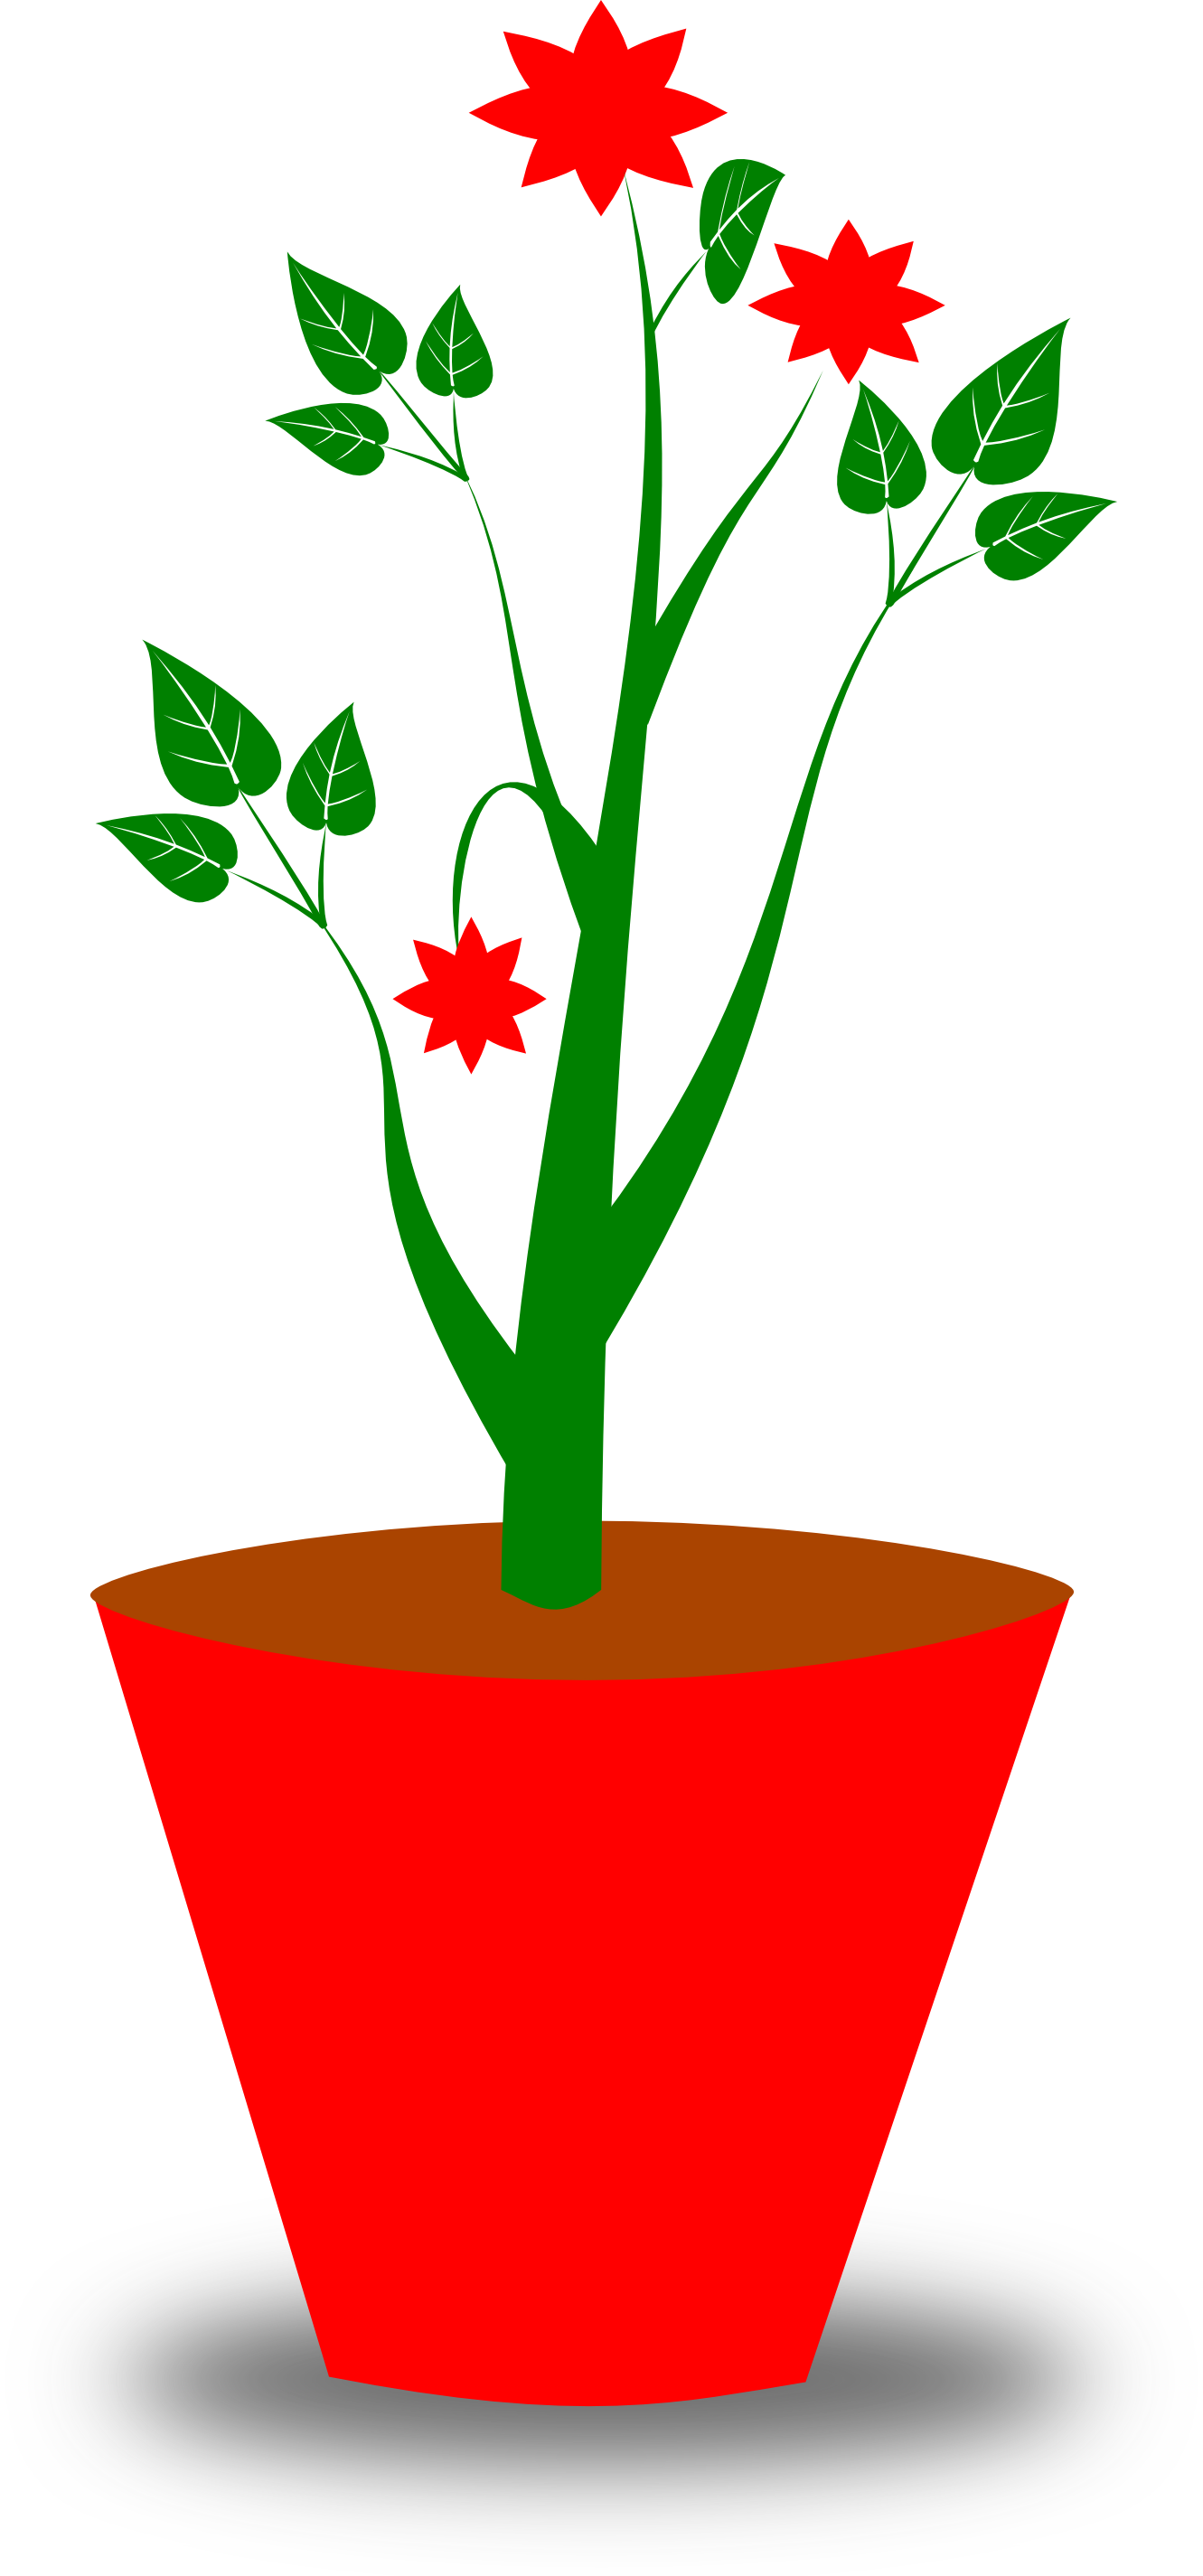 Flower pot clipart png graphic royalty free stock Flower Potted Plant Clipart - Clipart Kid graphic royalty free stock